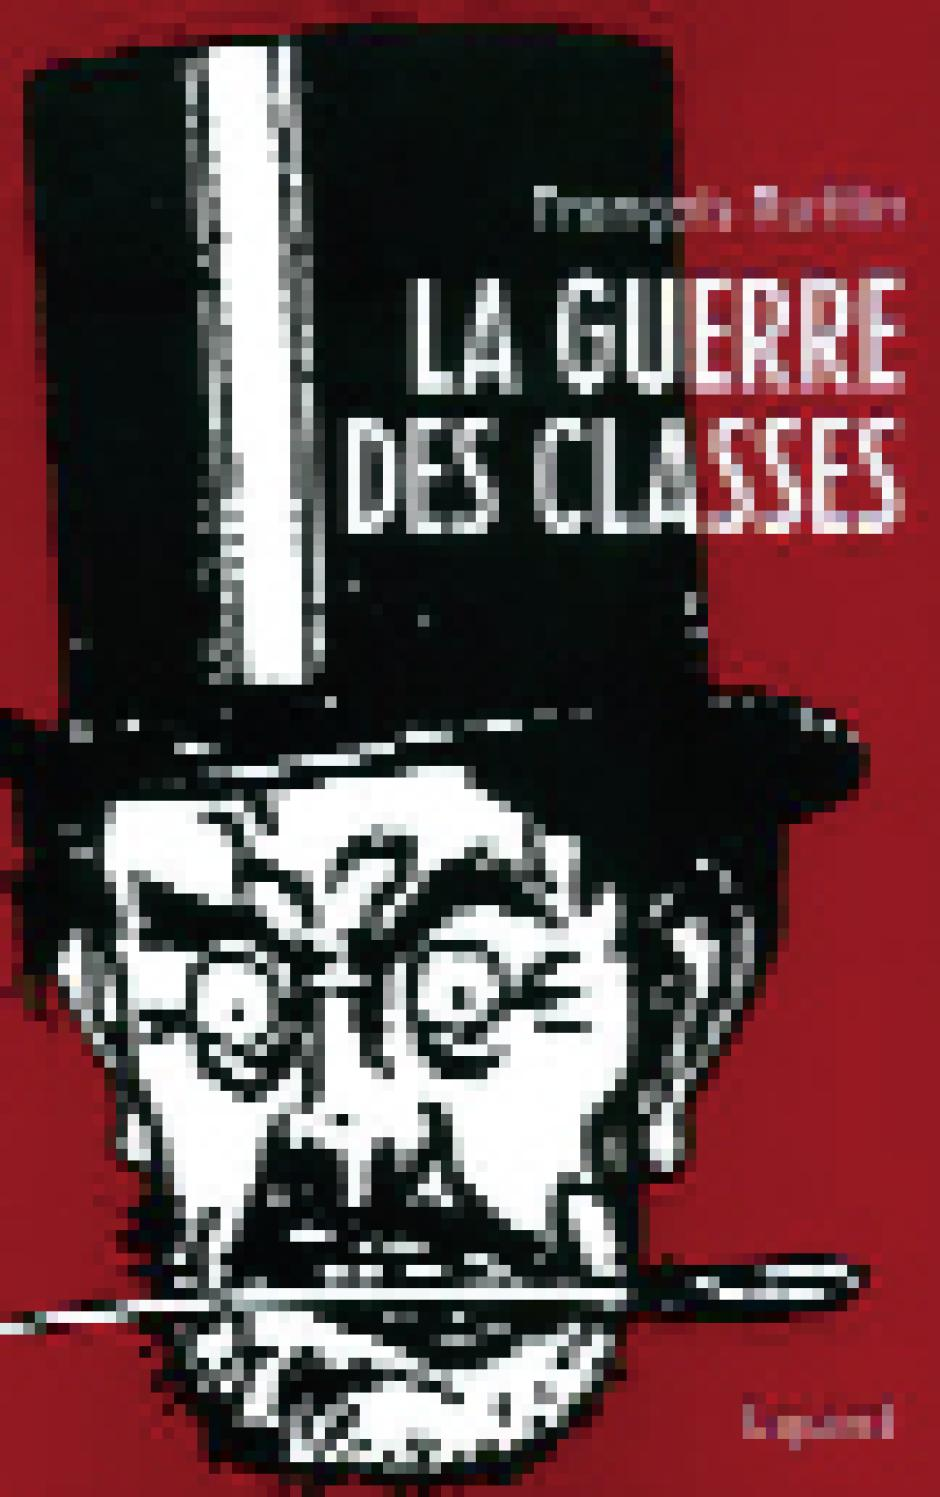 La guerre des classes Fayard, 2008 François Ruffin